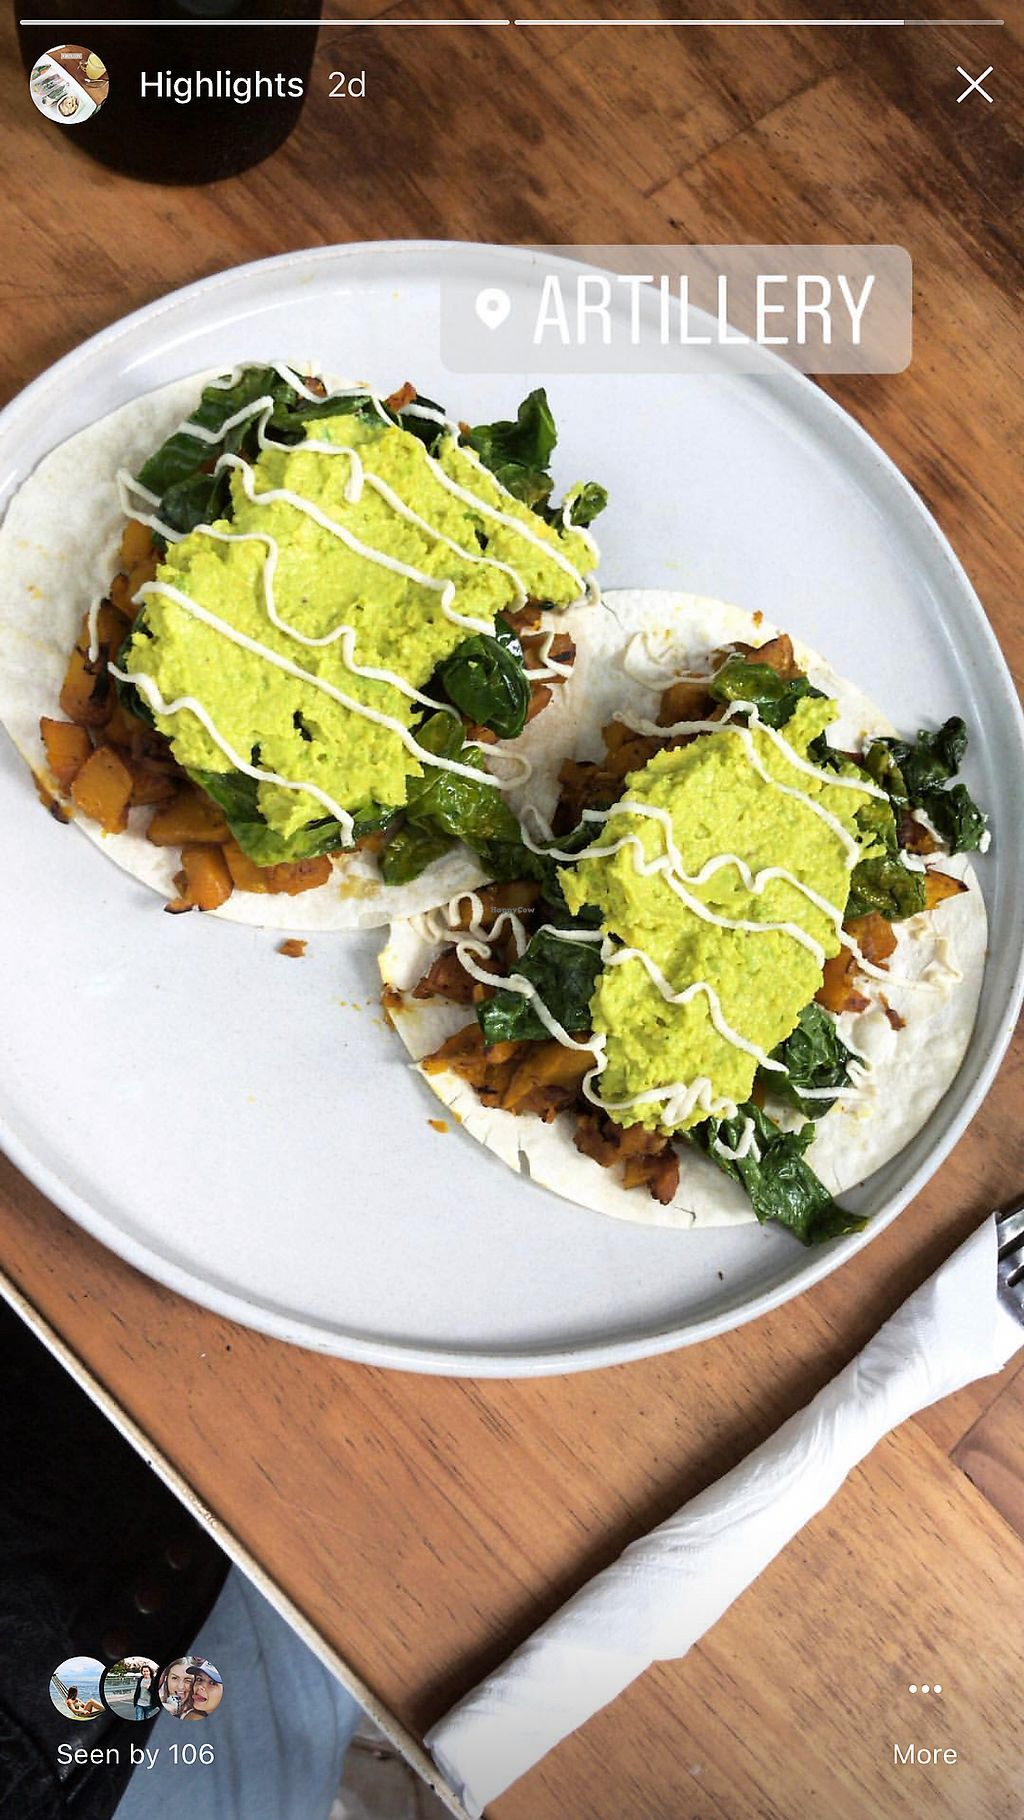 """Photo of ARTillery  by <a href=""""/members/profile/AnnaLevshin"""">AnnaLevshin</a> <br/>Pumpkin tacos $4.50  <br/> February 21, 2018  - <a href='/contact/abuse/image/69630/362023'>Report</a>"""